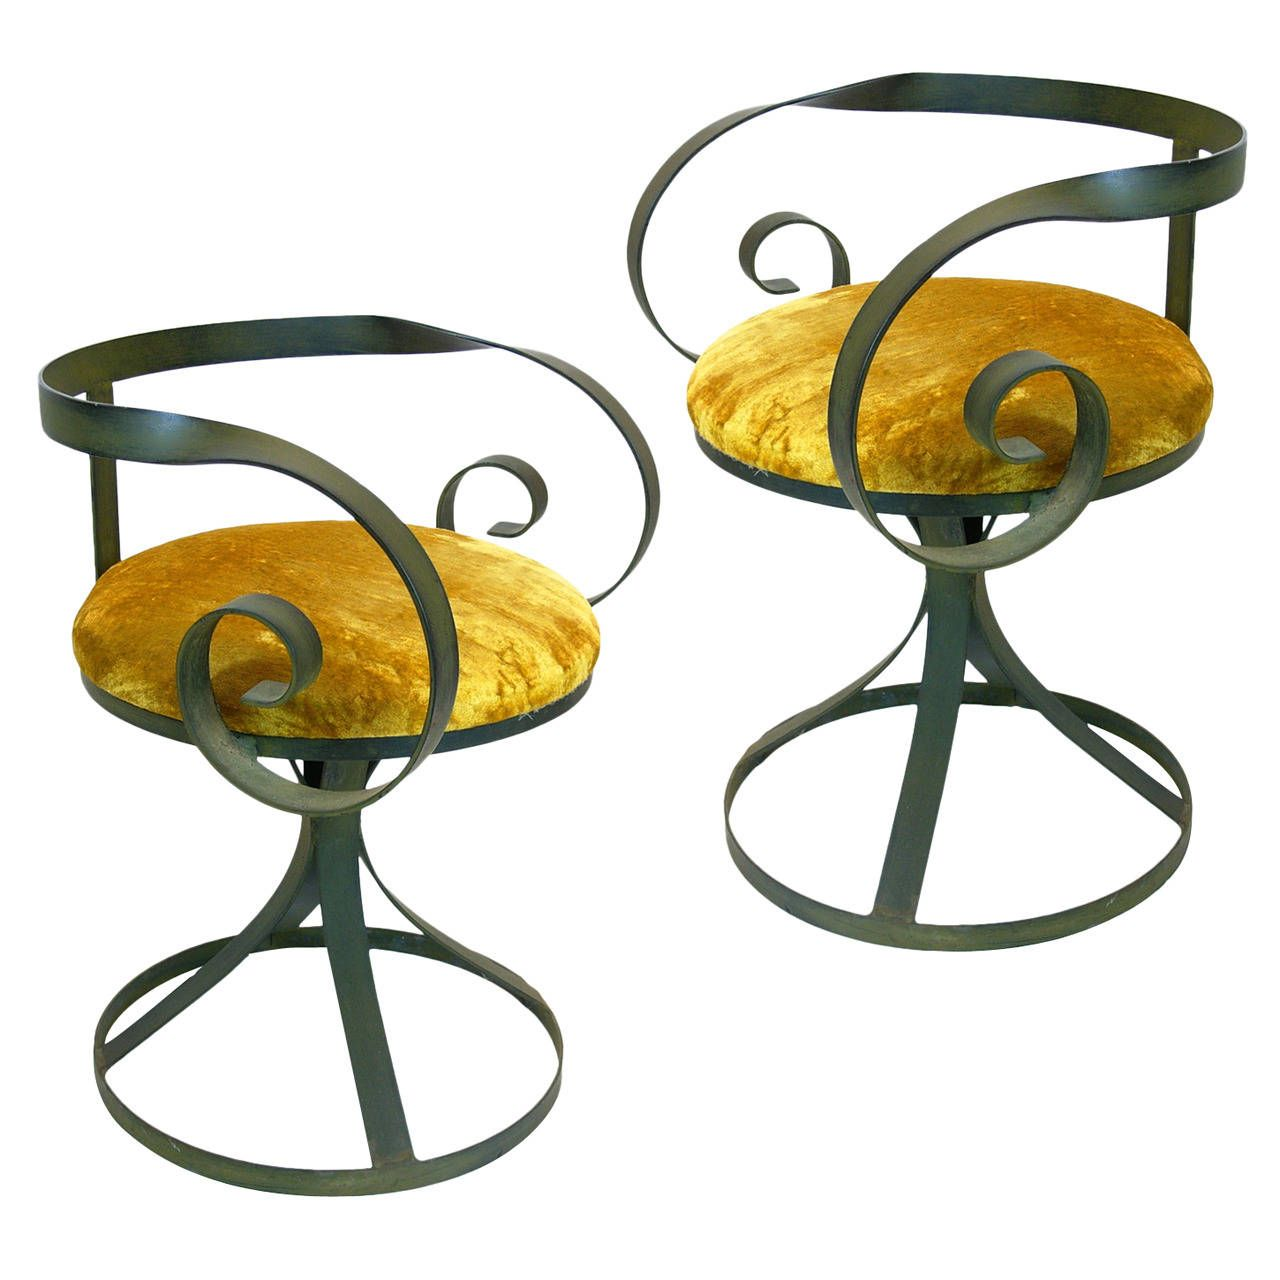 Pair Of Whimsical Wrought Iron Curlicue Swivel Chairs From A